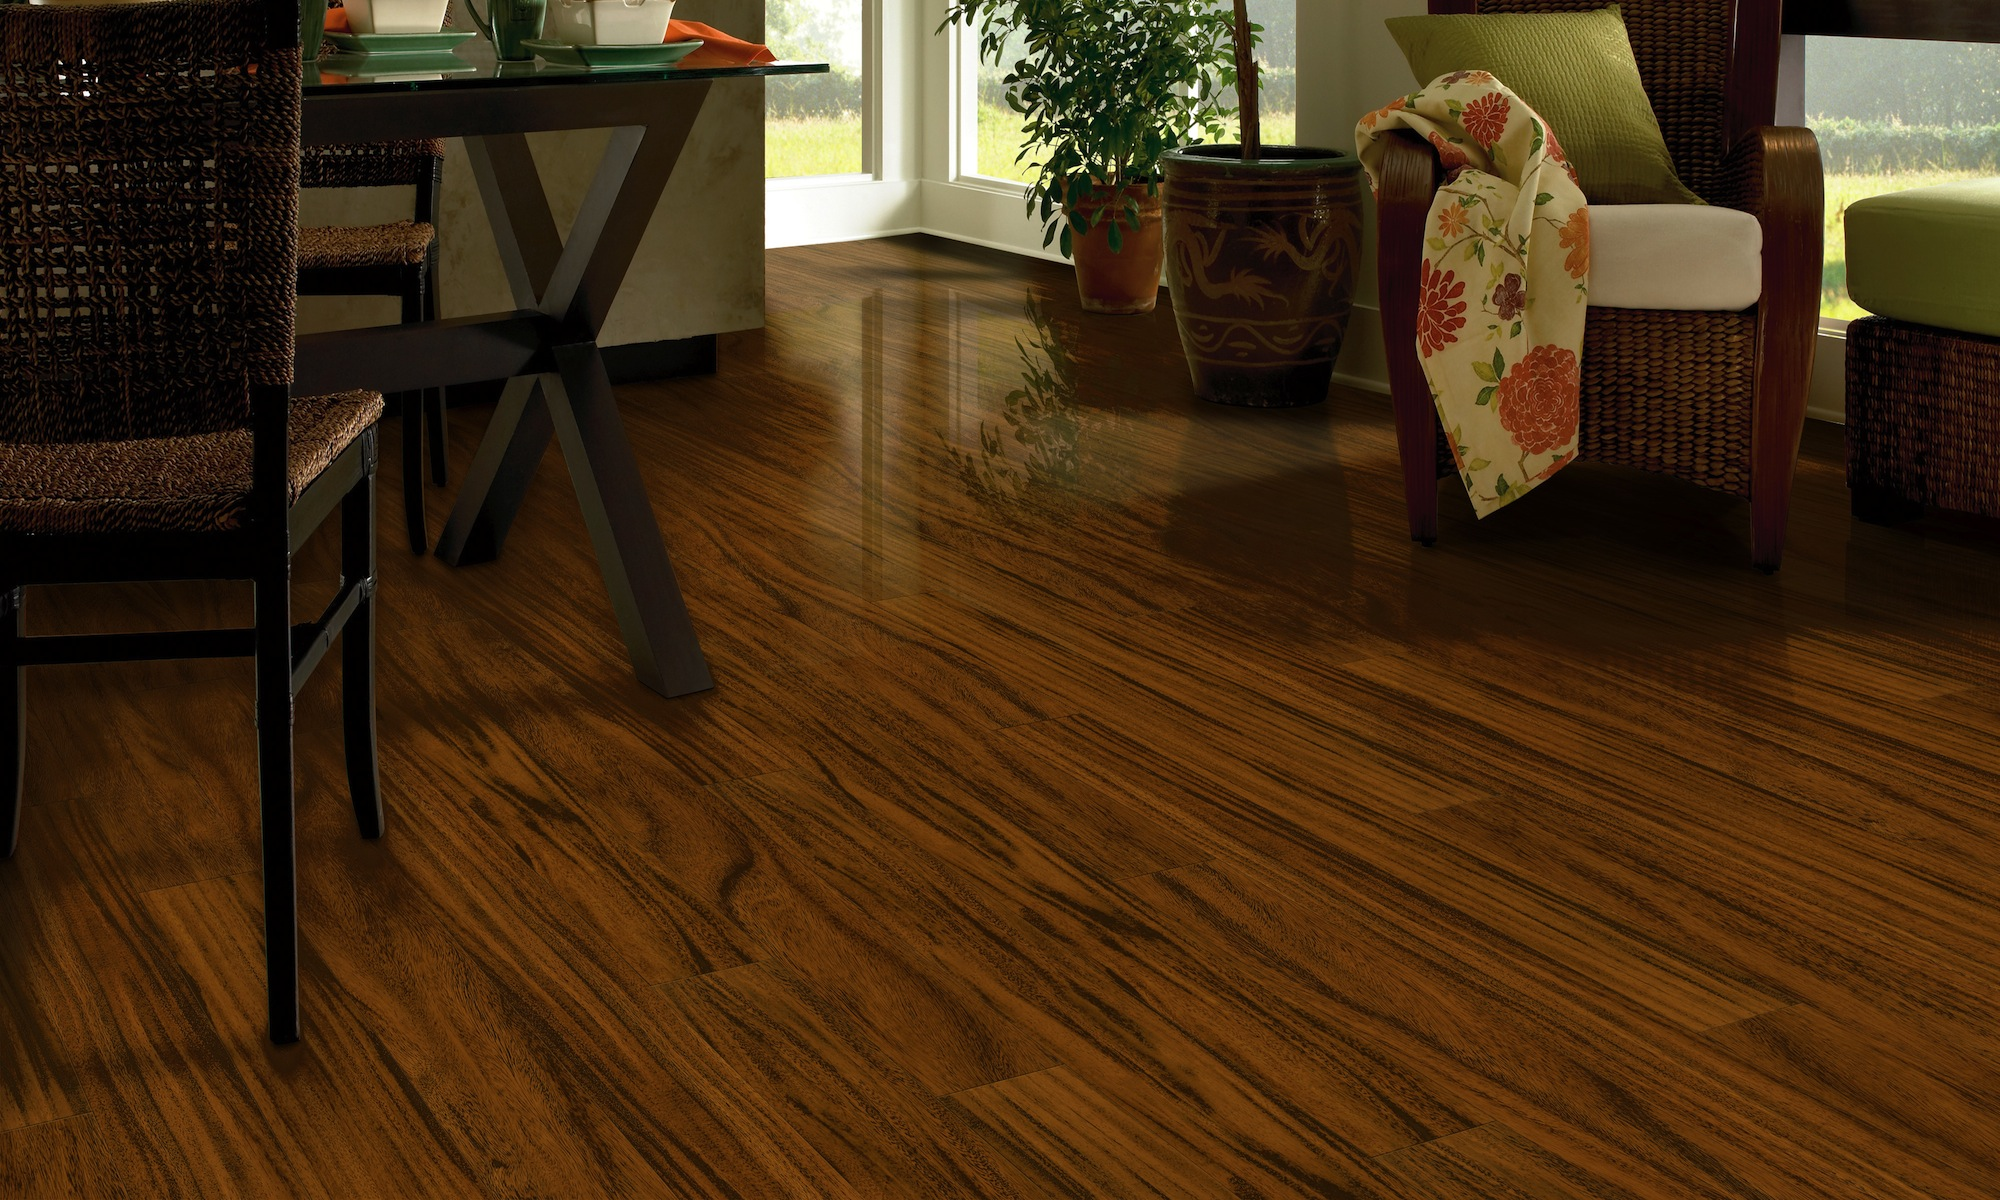 Charlotte flooring contractor services sfcc remodeling for Hardwood flooring service